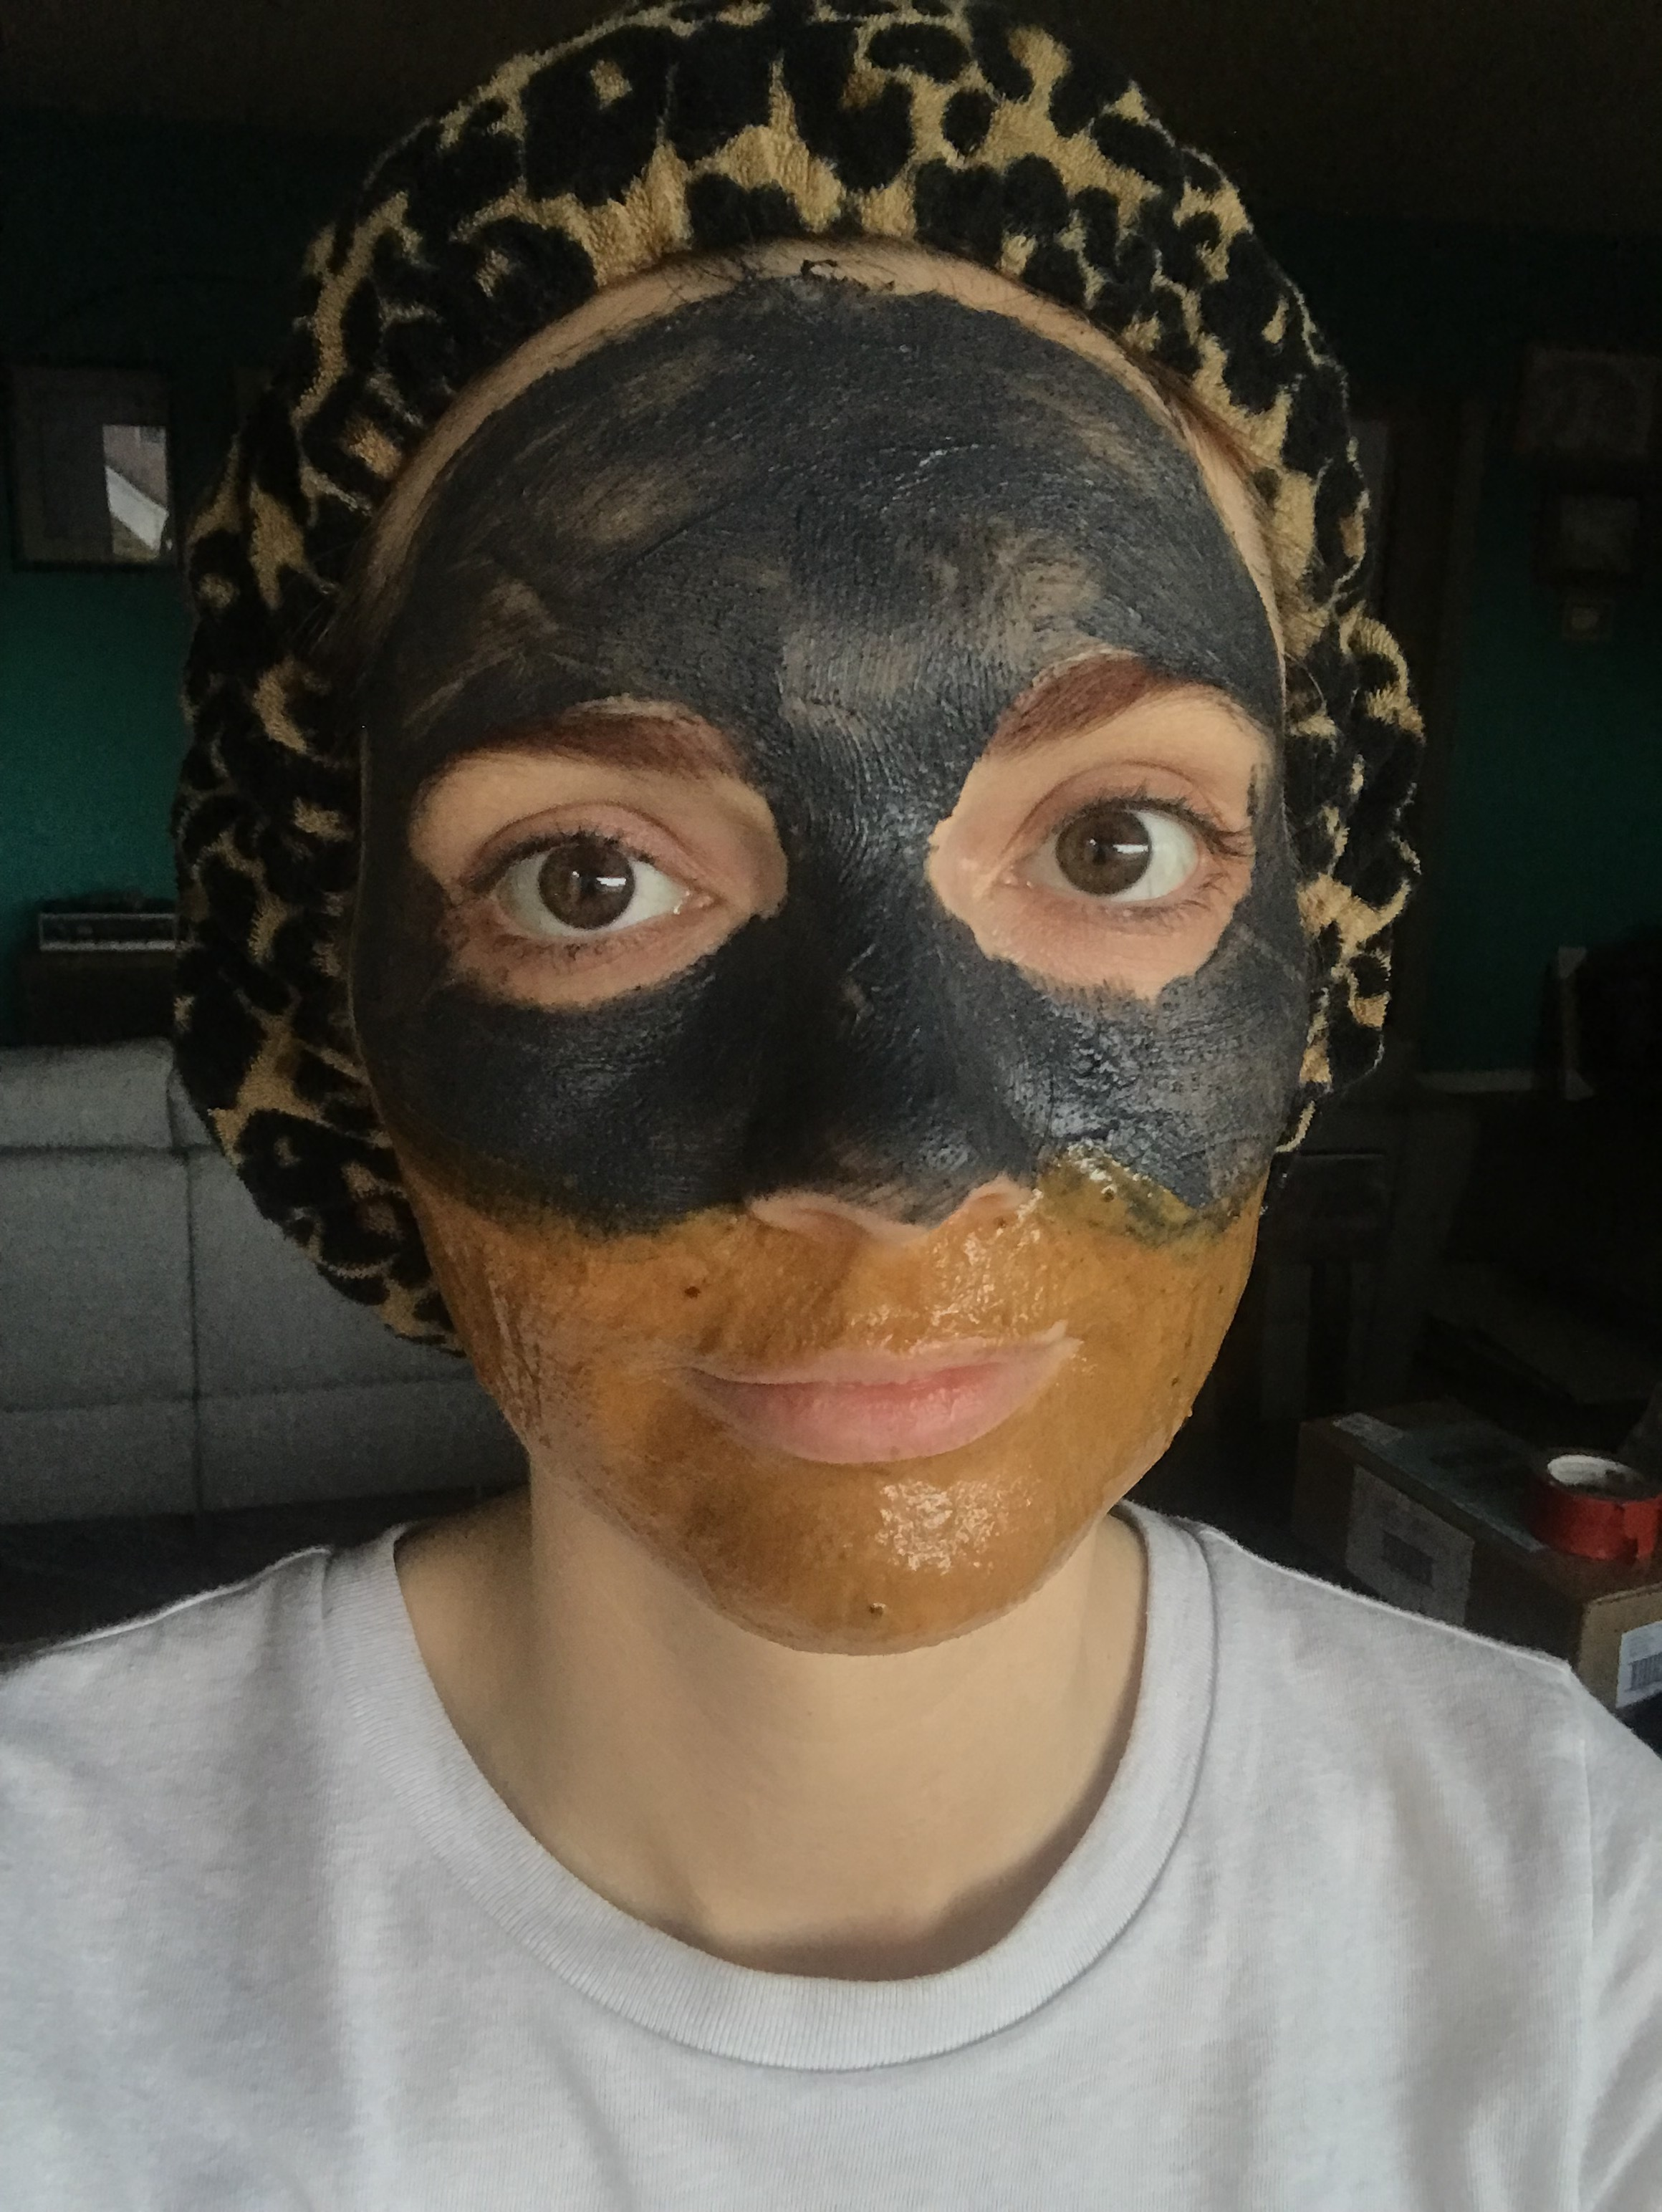 Jackie getting creative with Osea masks.